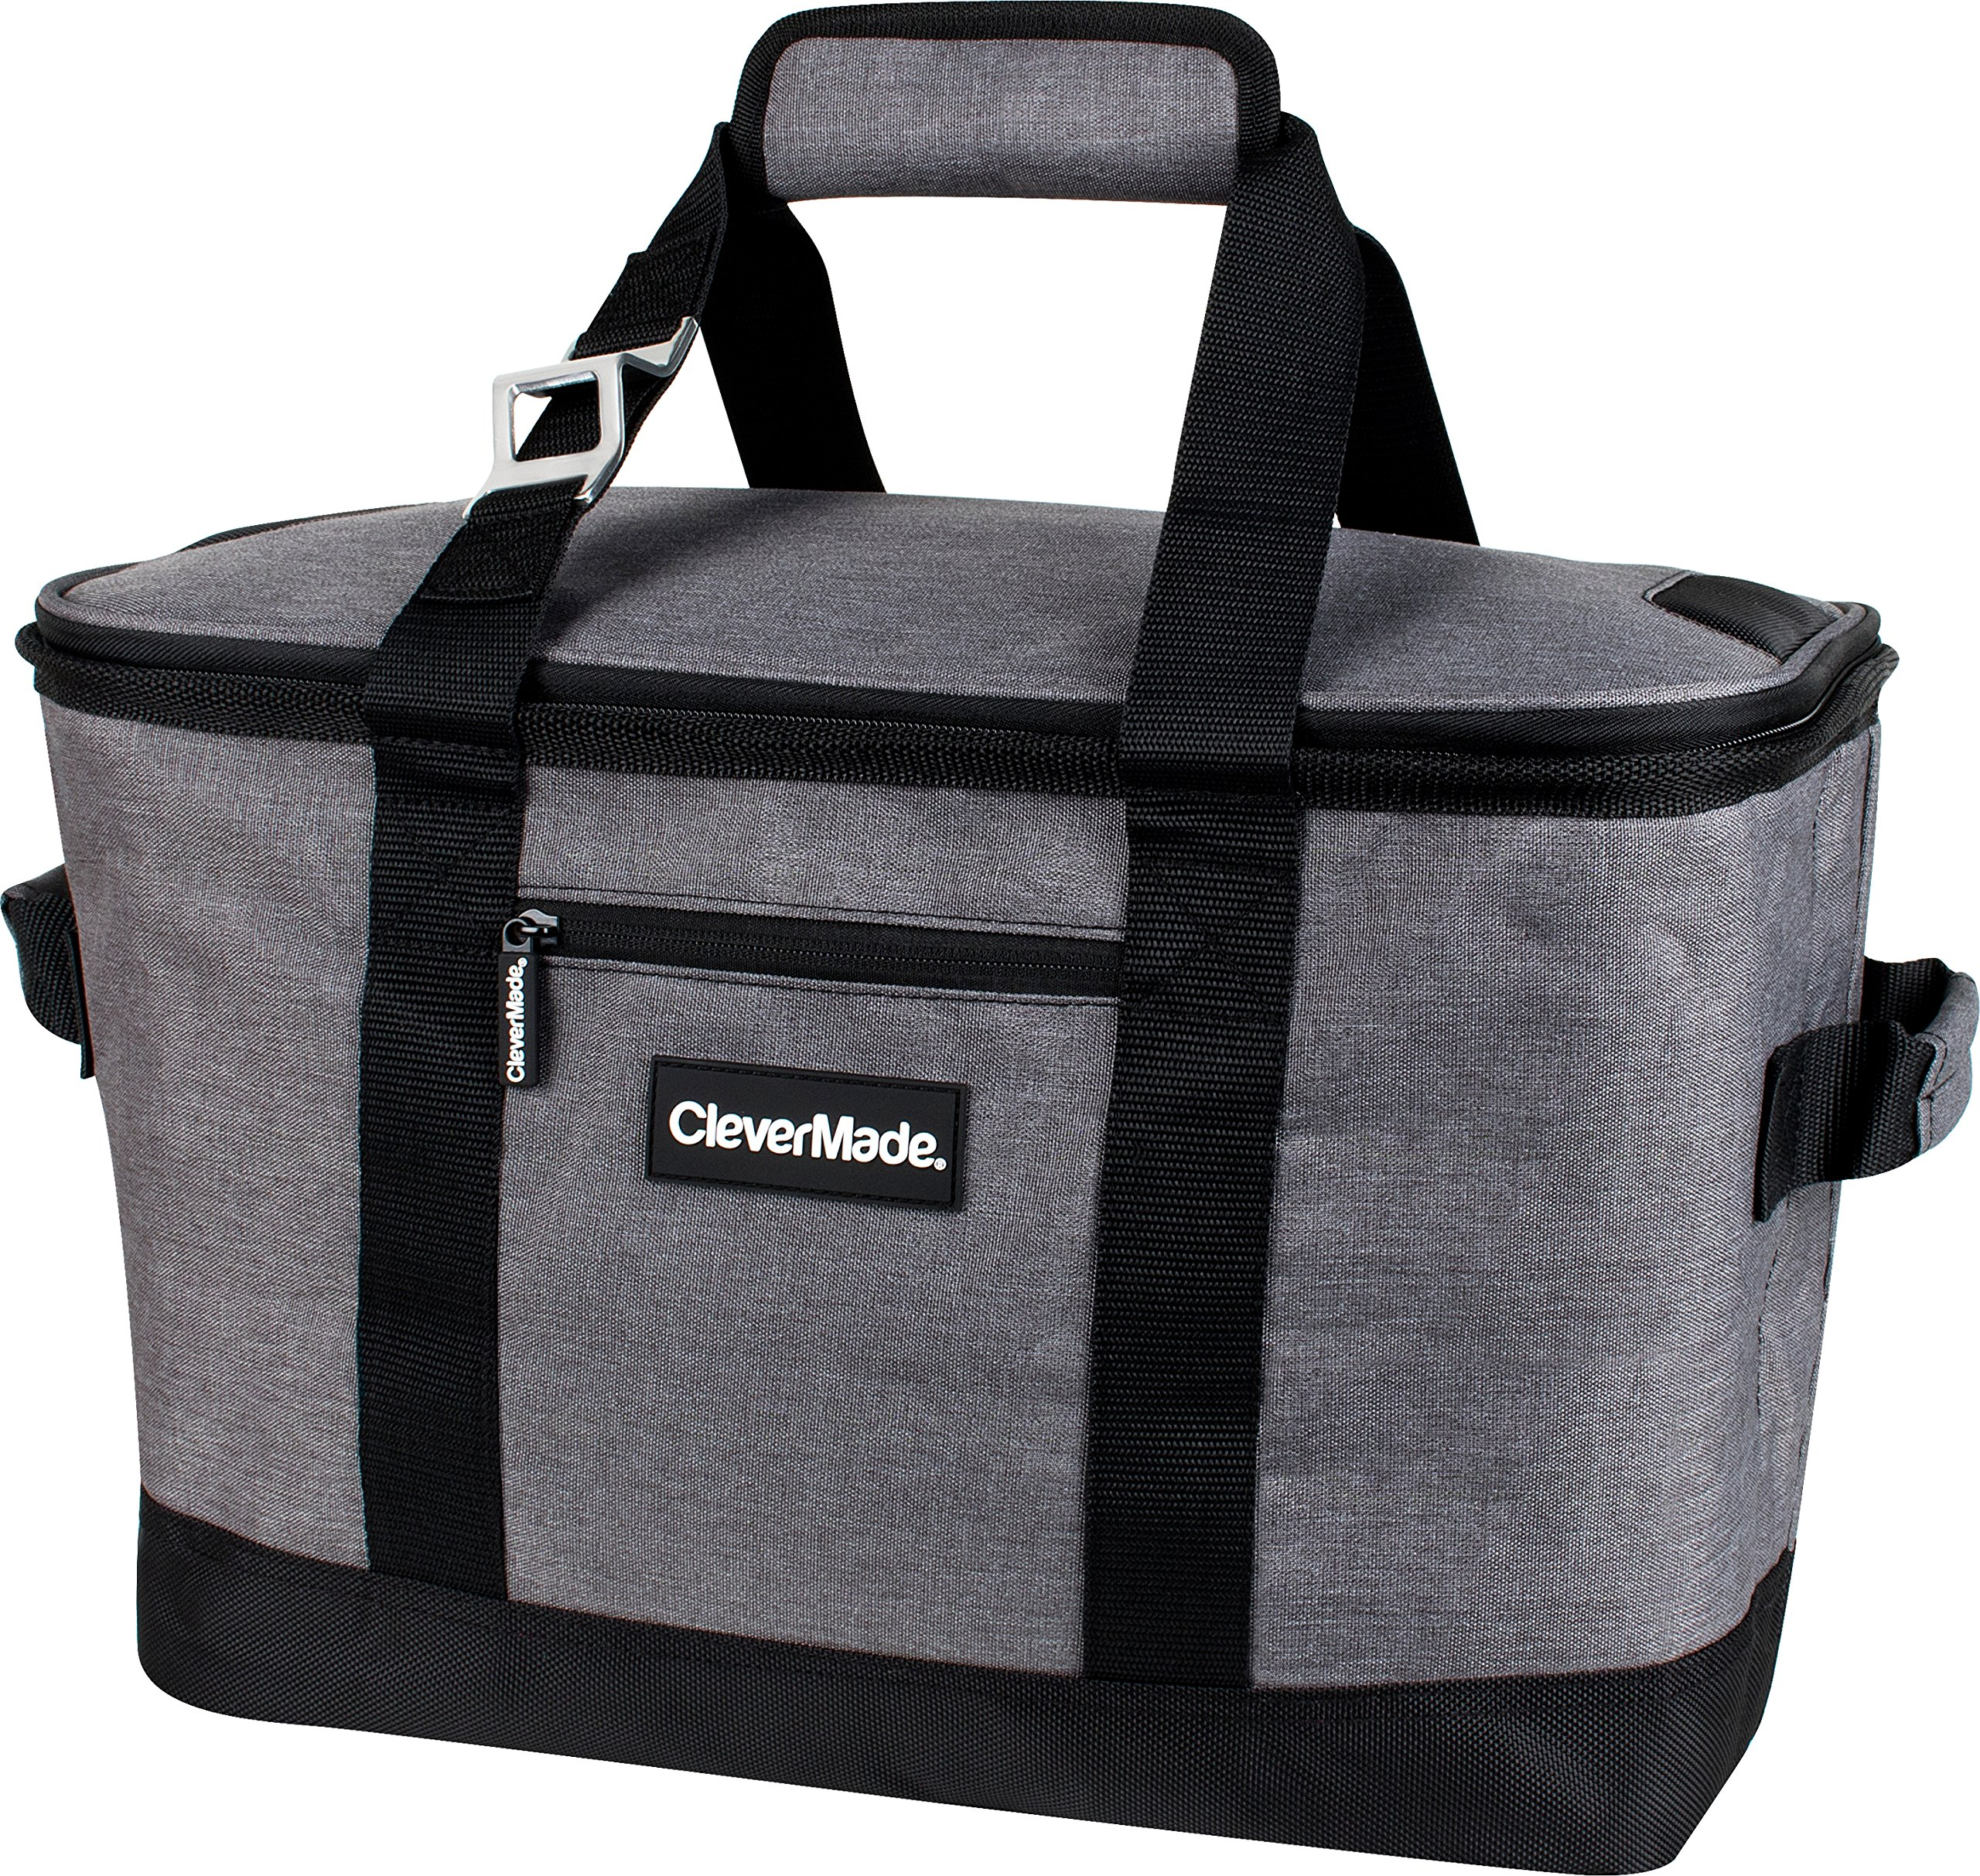 CleverMade Collapsible Cooler Bag: Insulated Leakproof 50 Can Soft Sided Portable Beverage Tote with Bottle Opener & Storage Pockets, Charcoal/Black by CleverMade